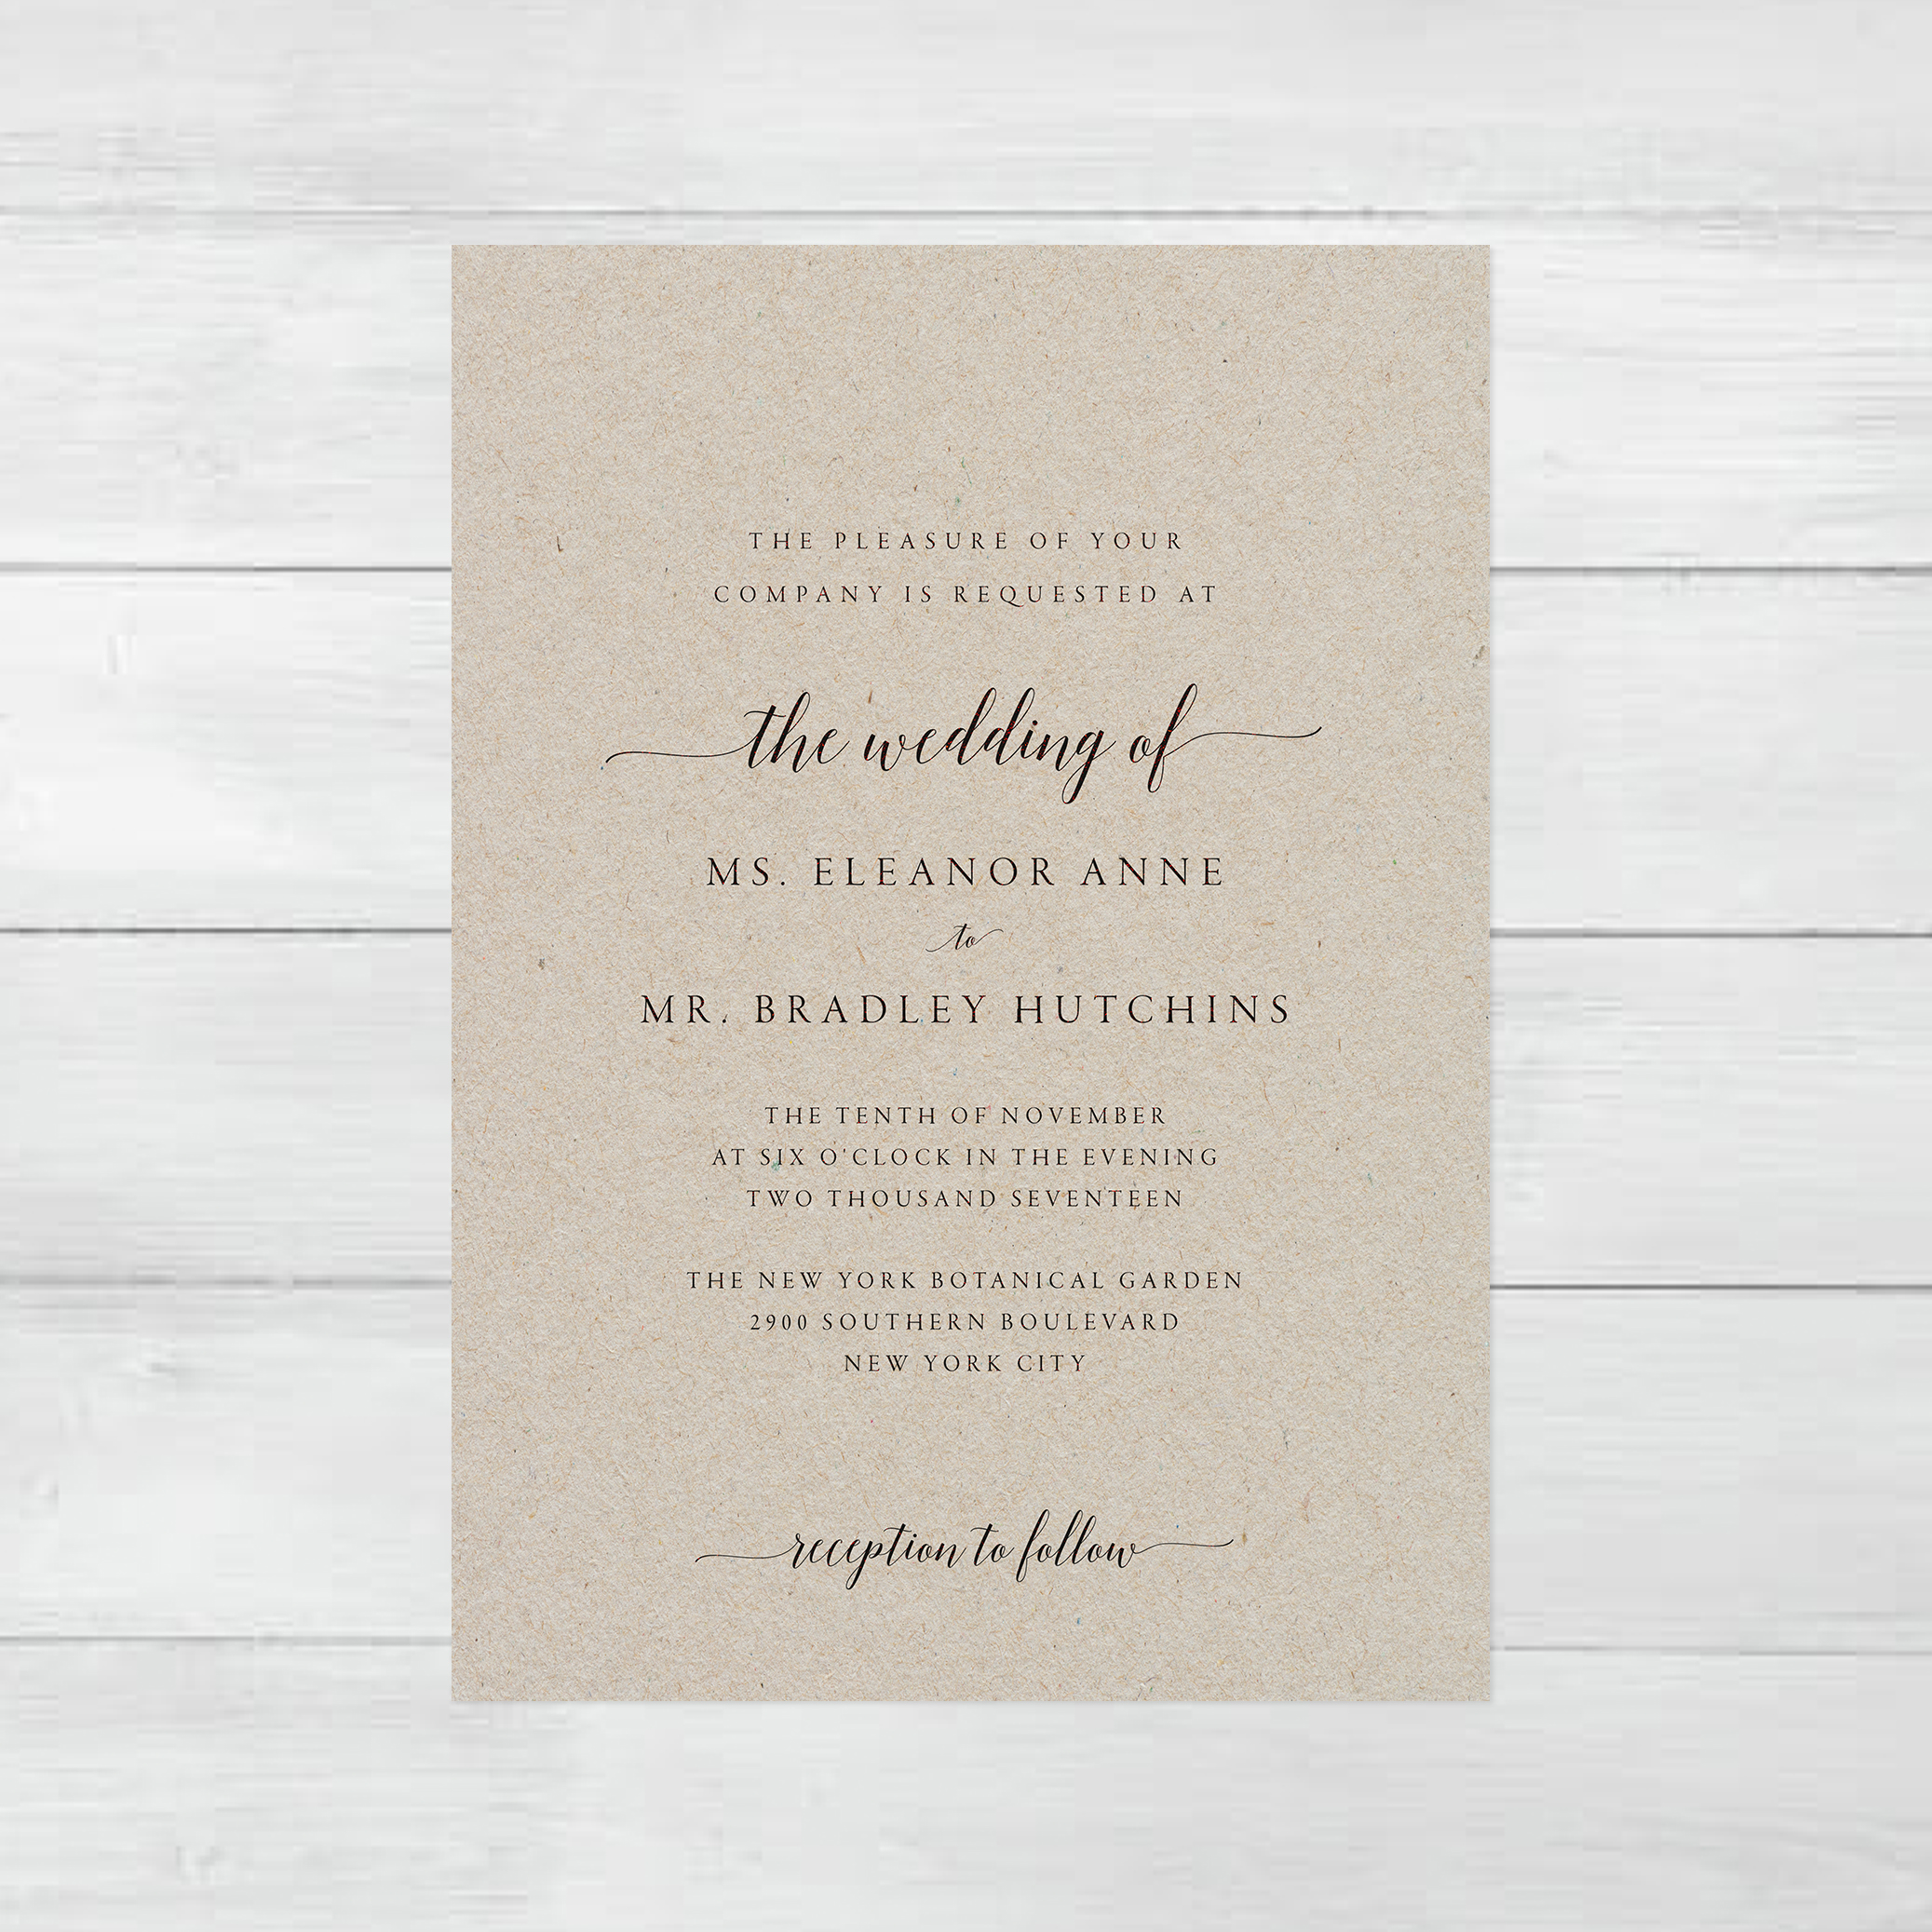 4. Kraft paper invites - Kraft paper is a perfect alternative to basic card stock. Not to mention the natural vibe that it adds to your wedding invitation! Printing your Simply Suite template on kraft paper is sure to make your invitation stand out from the rest!See the full invitation suite, here!